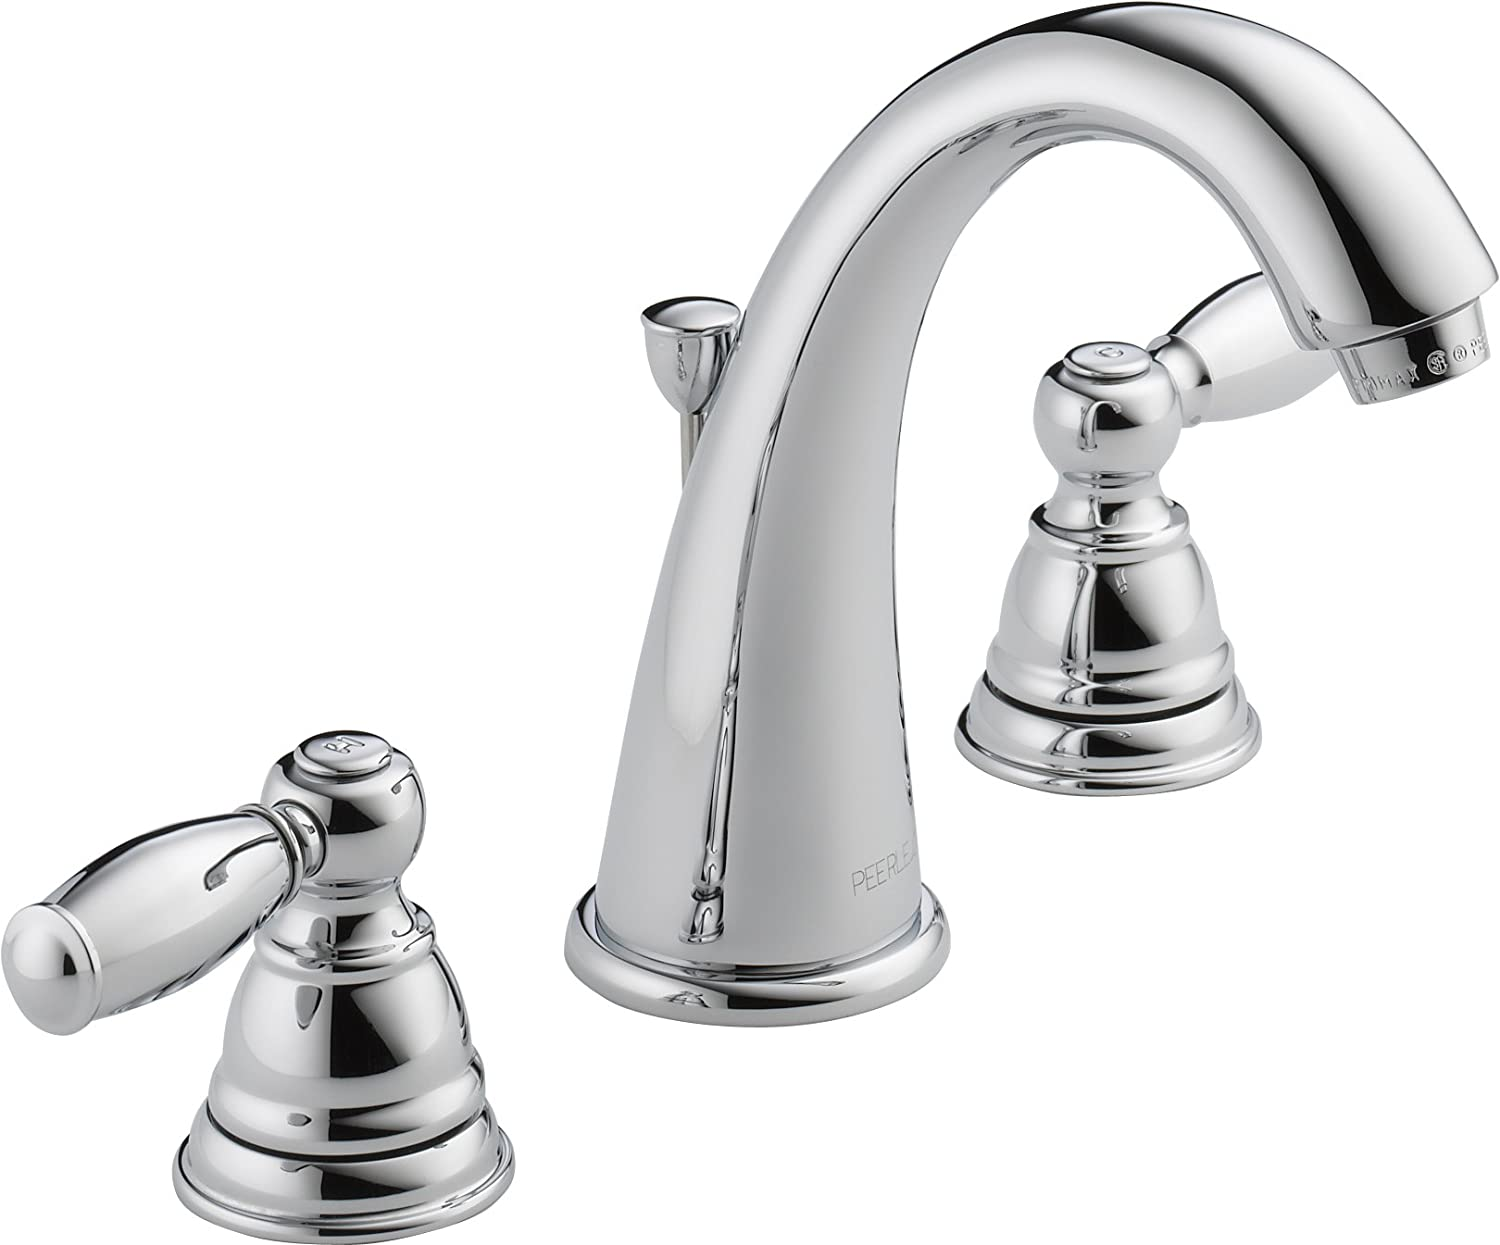 unique faucets repair a replacing ideas best of sink zhis faucet bathroom design